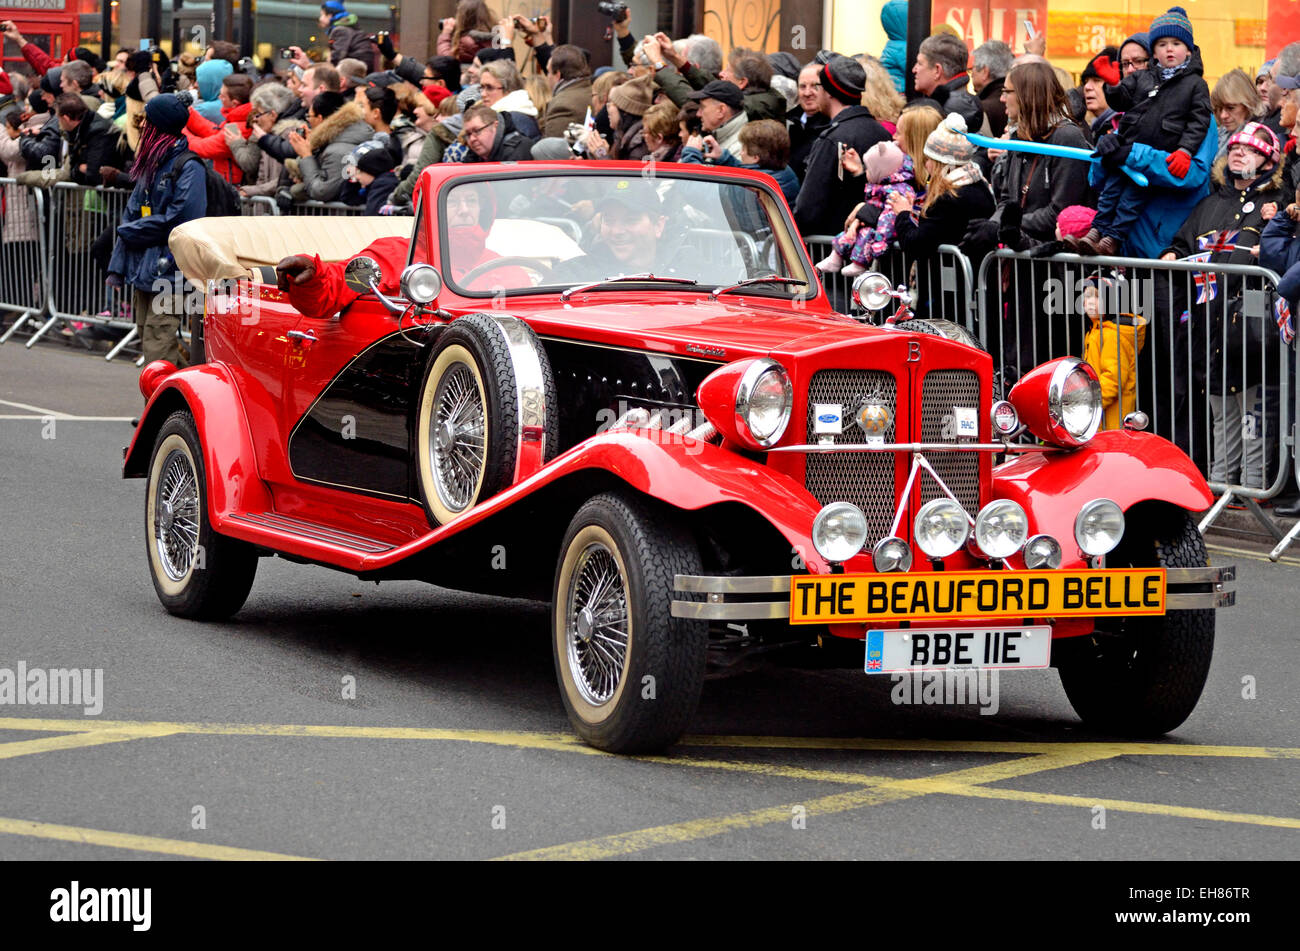 London, 1st January 2015. New Year's day Parade from Piccadilly to Parliament Square - Beauford belle (BBE IIE) - Stock Image